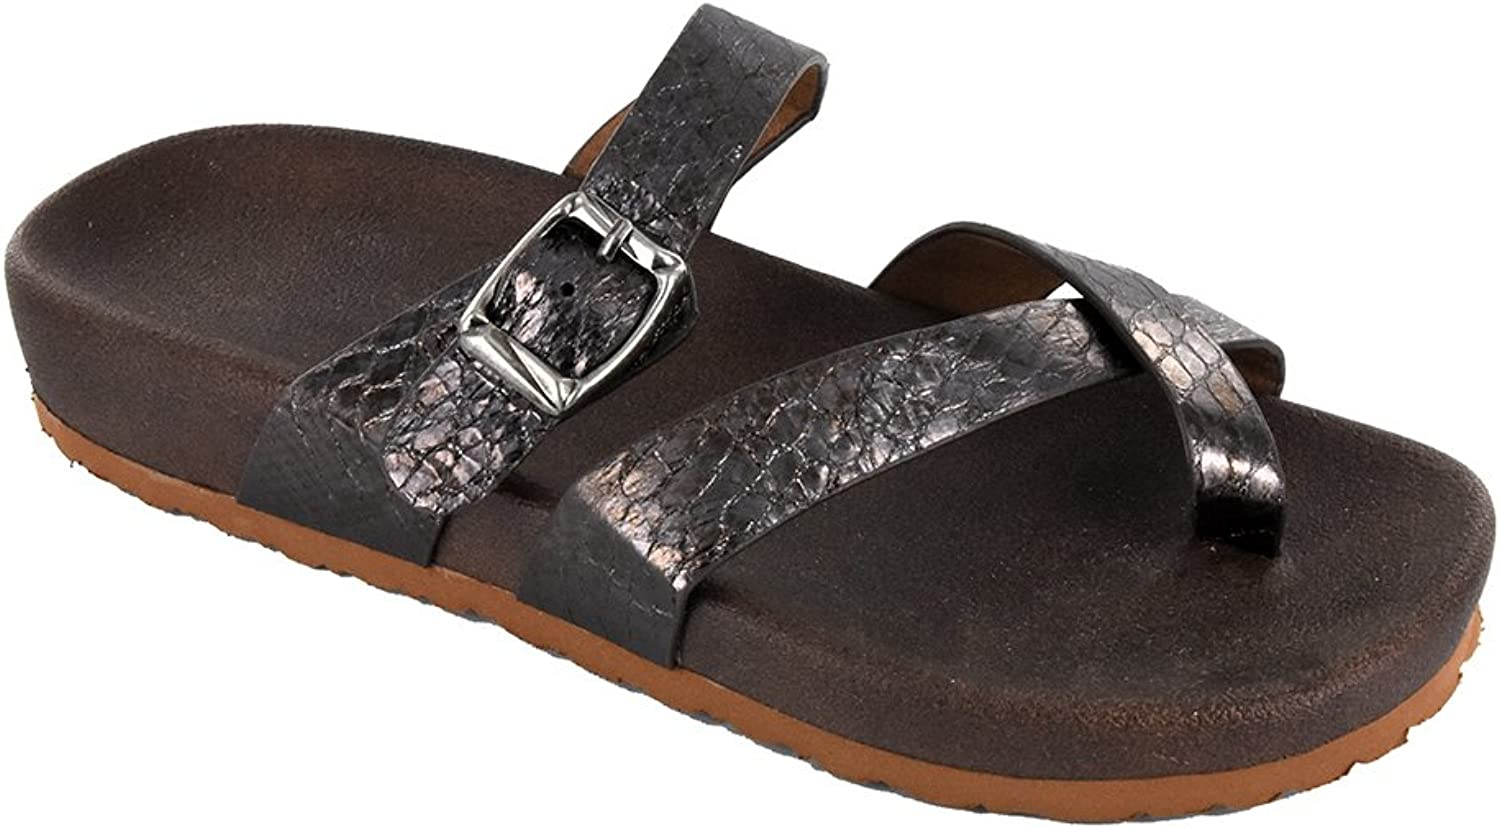 Corkys Women's Santa Ana Strappy Slip On Sandals Pewter